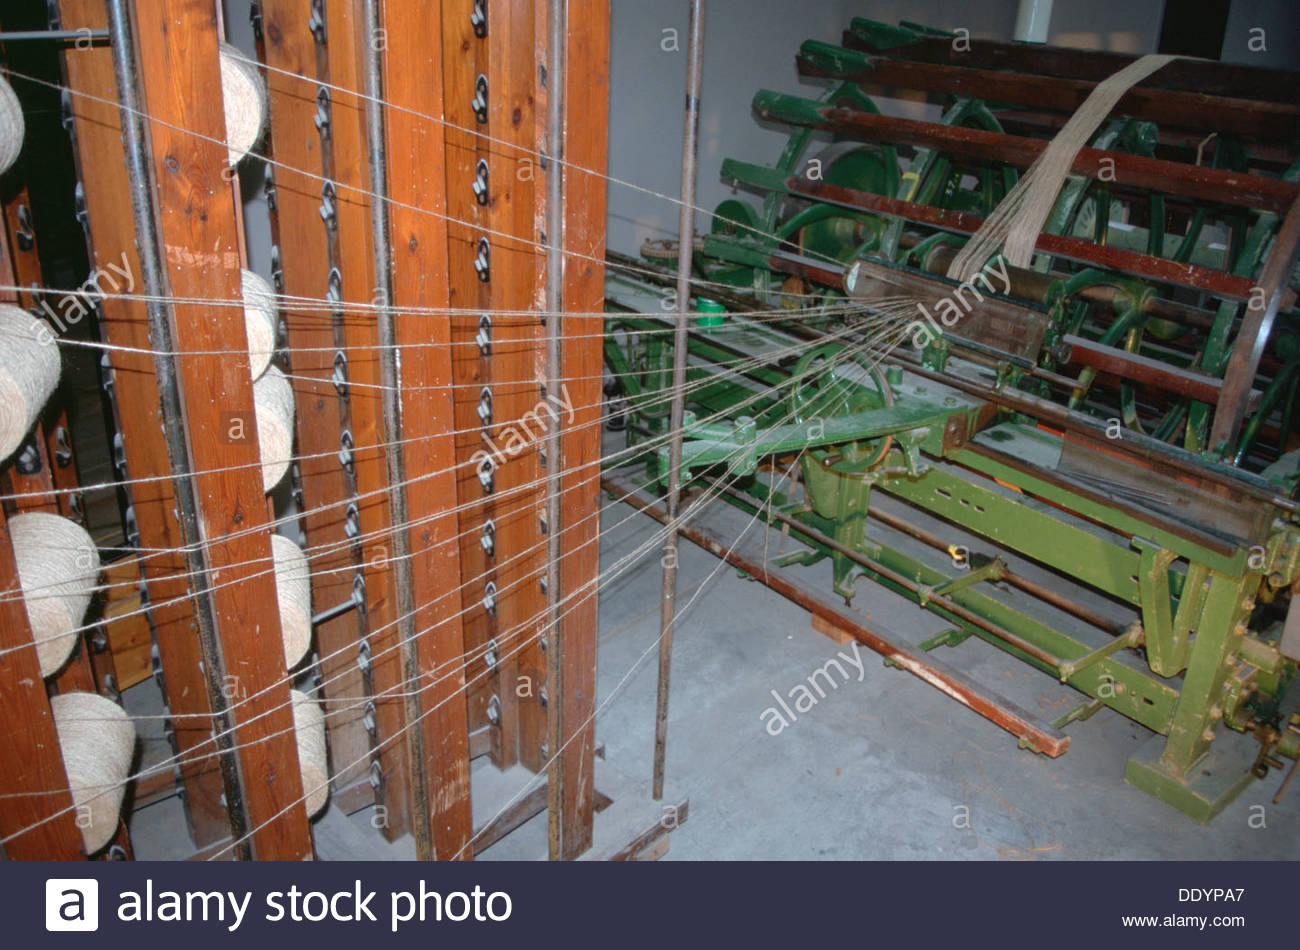 Creel for winding warp threads prior to beaming, Verdant Works Museum, Dundee, Scotland.  Artist: Dorothy Burrows - Stock Image